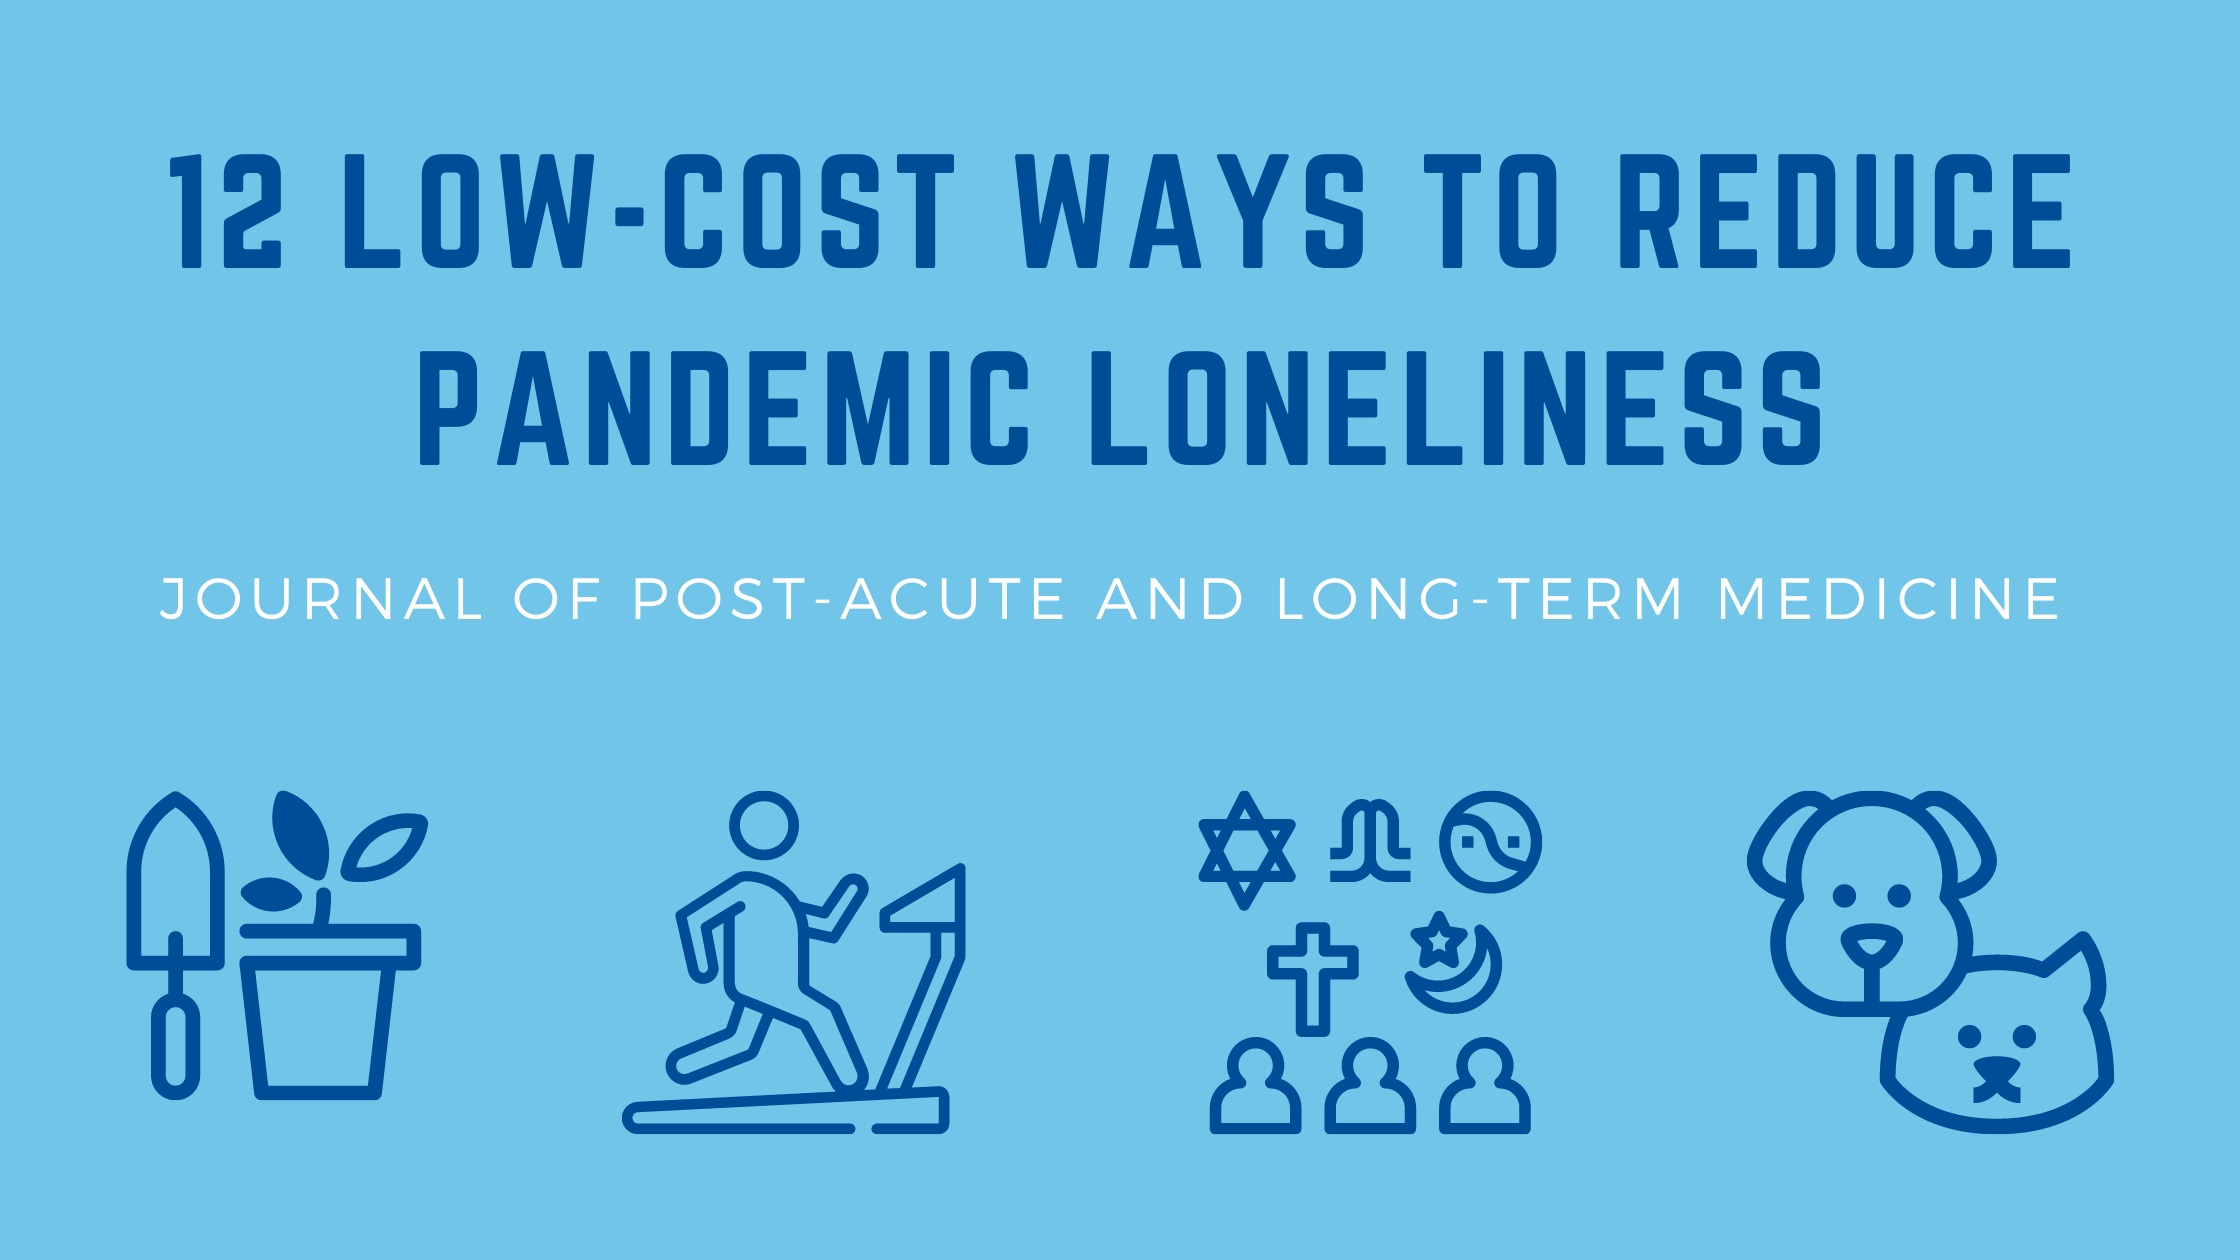 12 LOW-COST WAYS TO REDUCE PANDEMIC LONELINESS